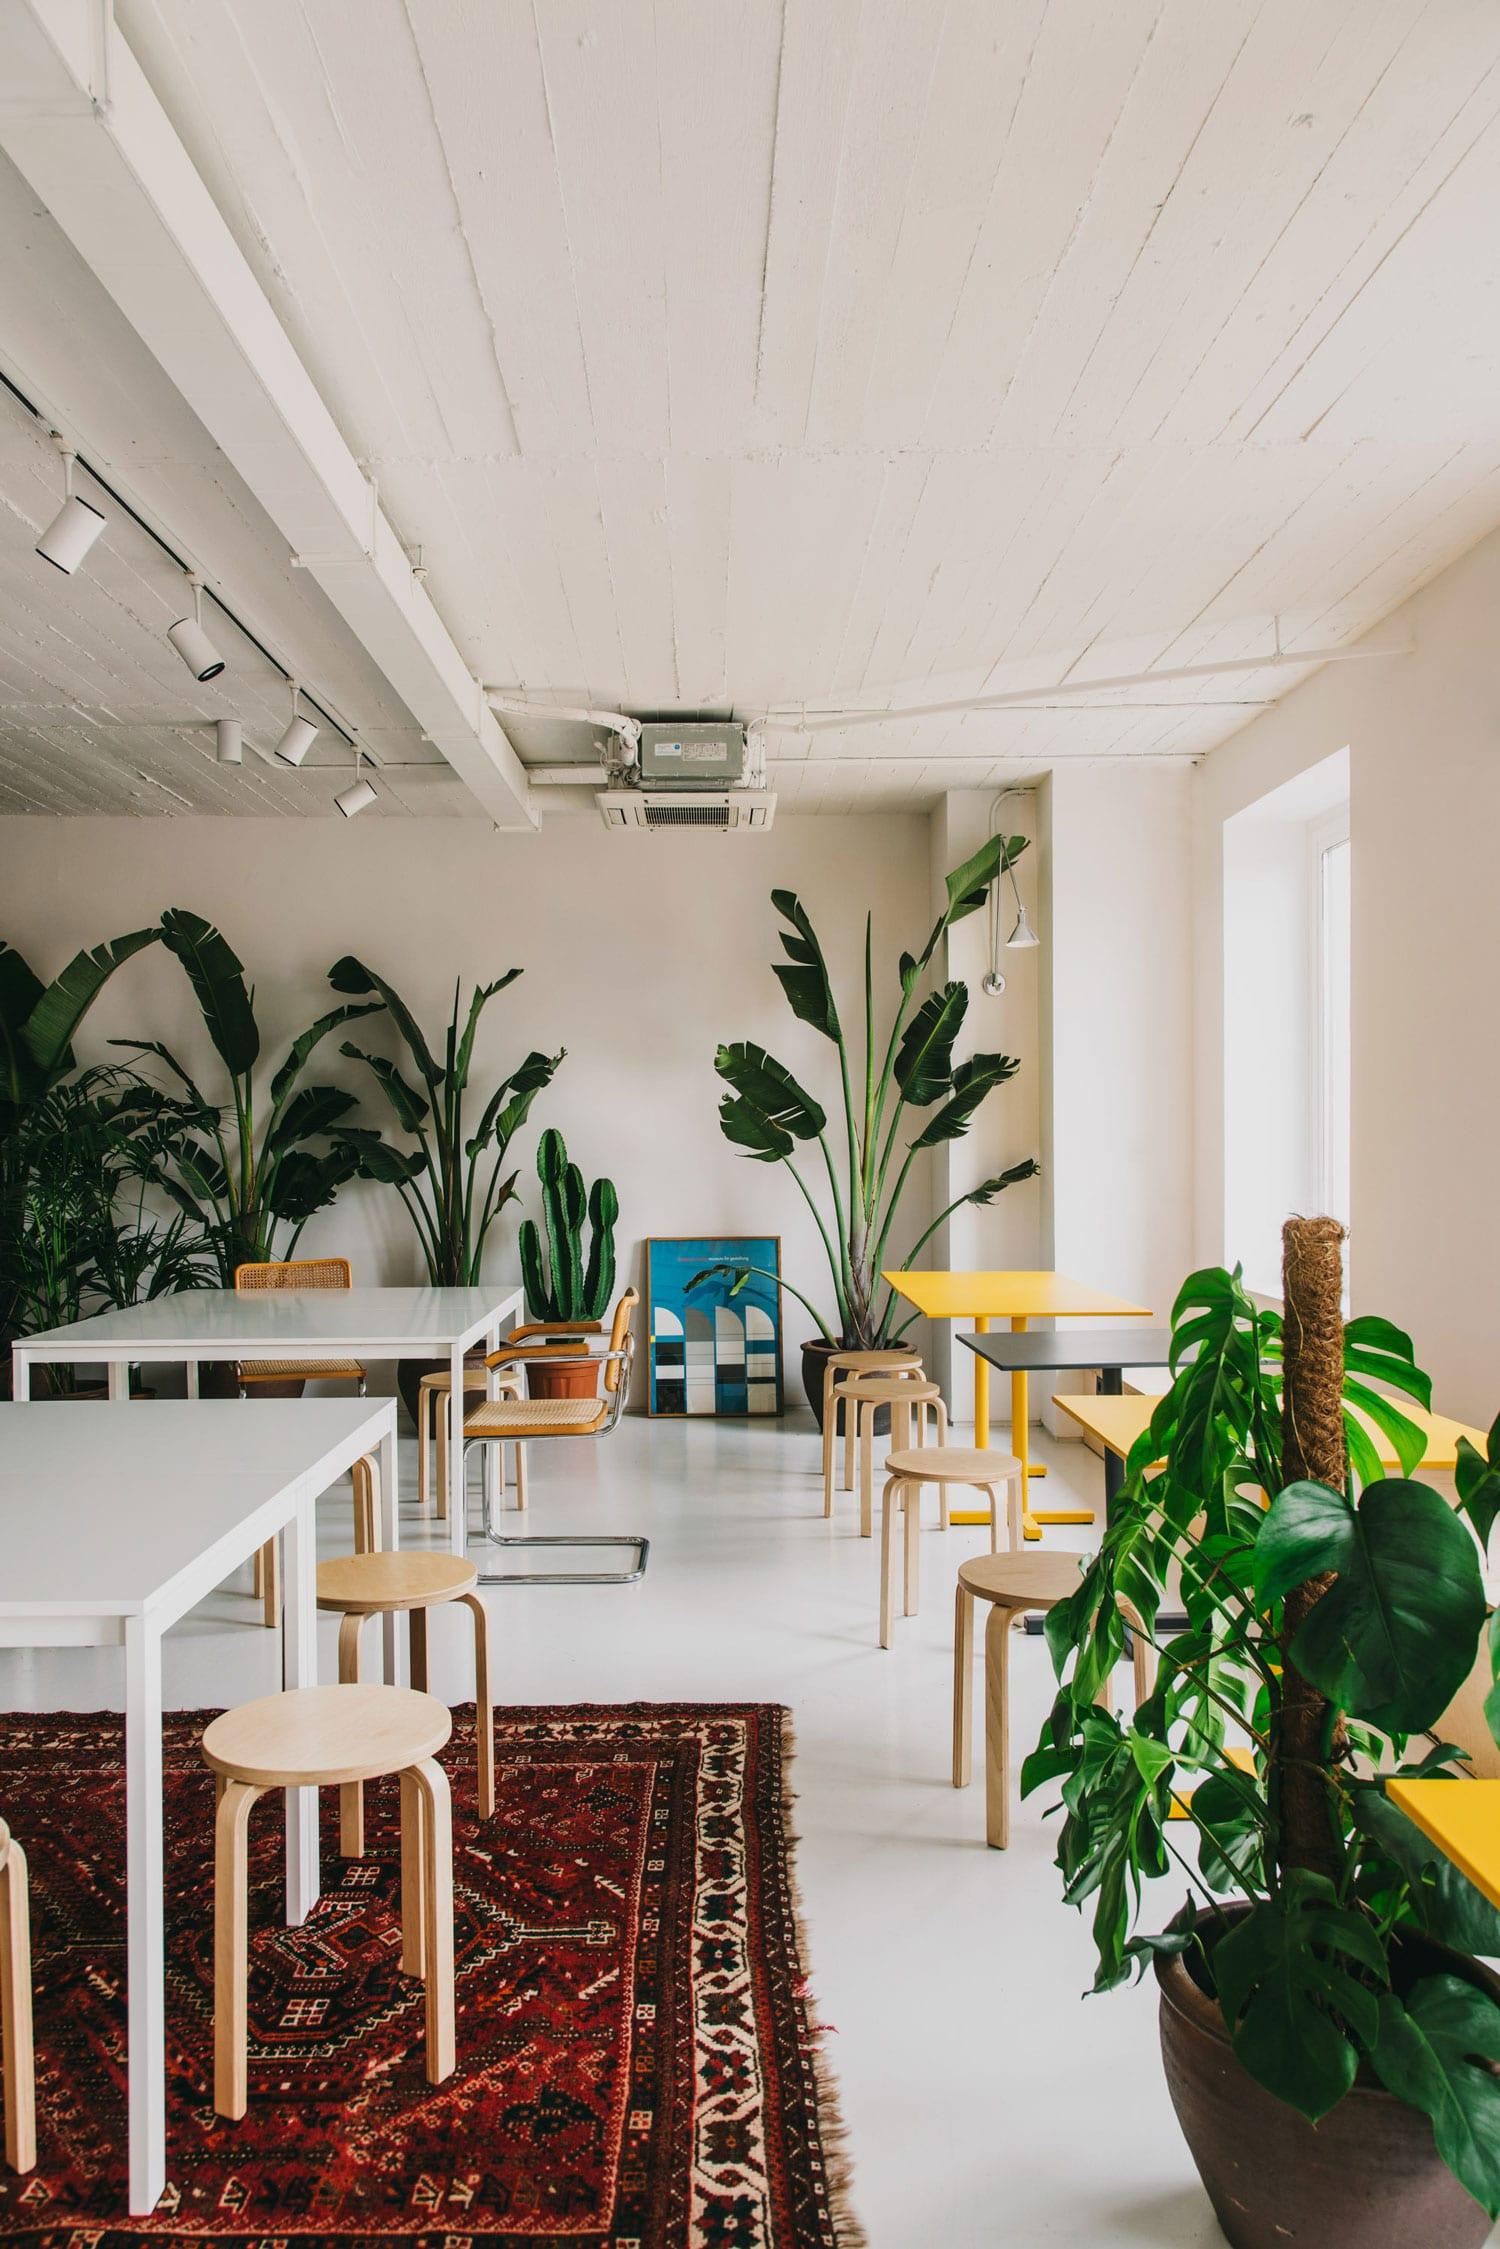 CLOUD Coworking in Barcelona, Spain by MESURA | Yellowtrace